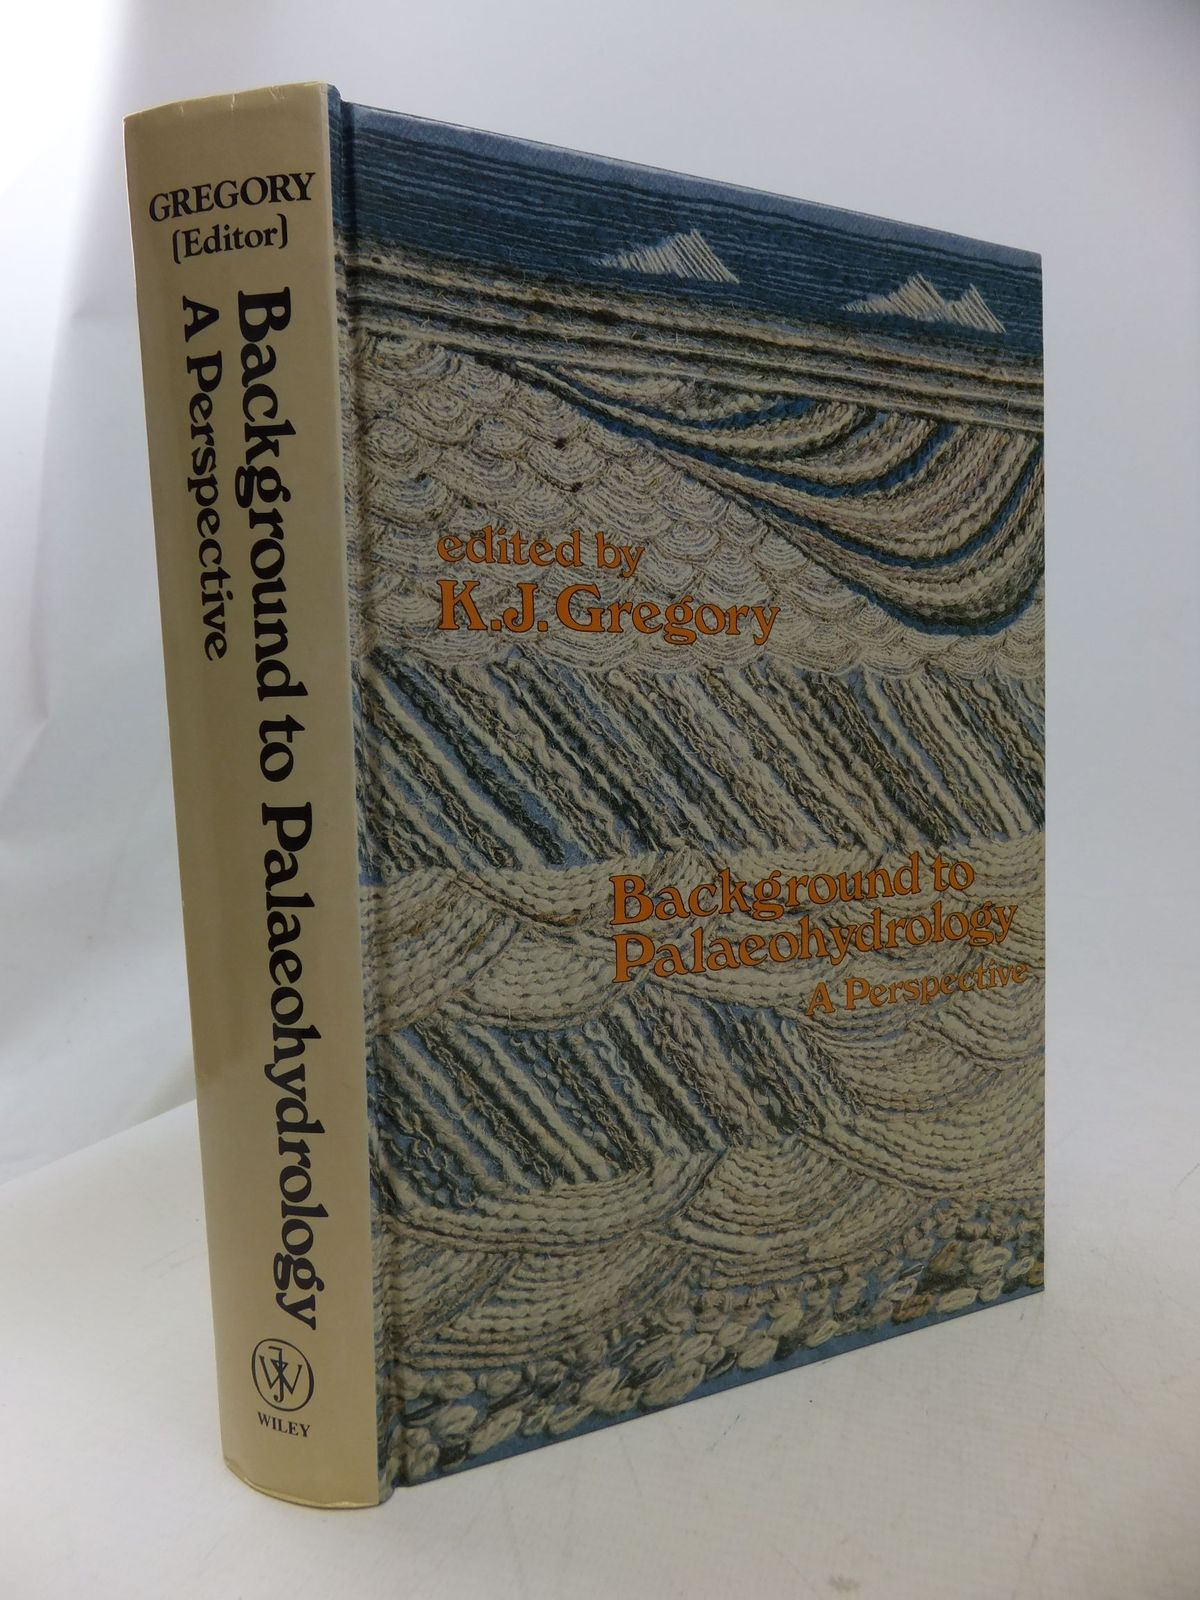 Photo of BACKGROUND TO PALAEOHYDROLOGY A PERSPECTIVE- Stock Number: 1710854